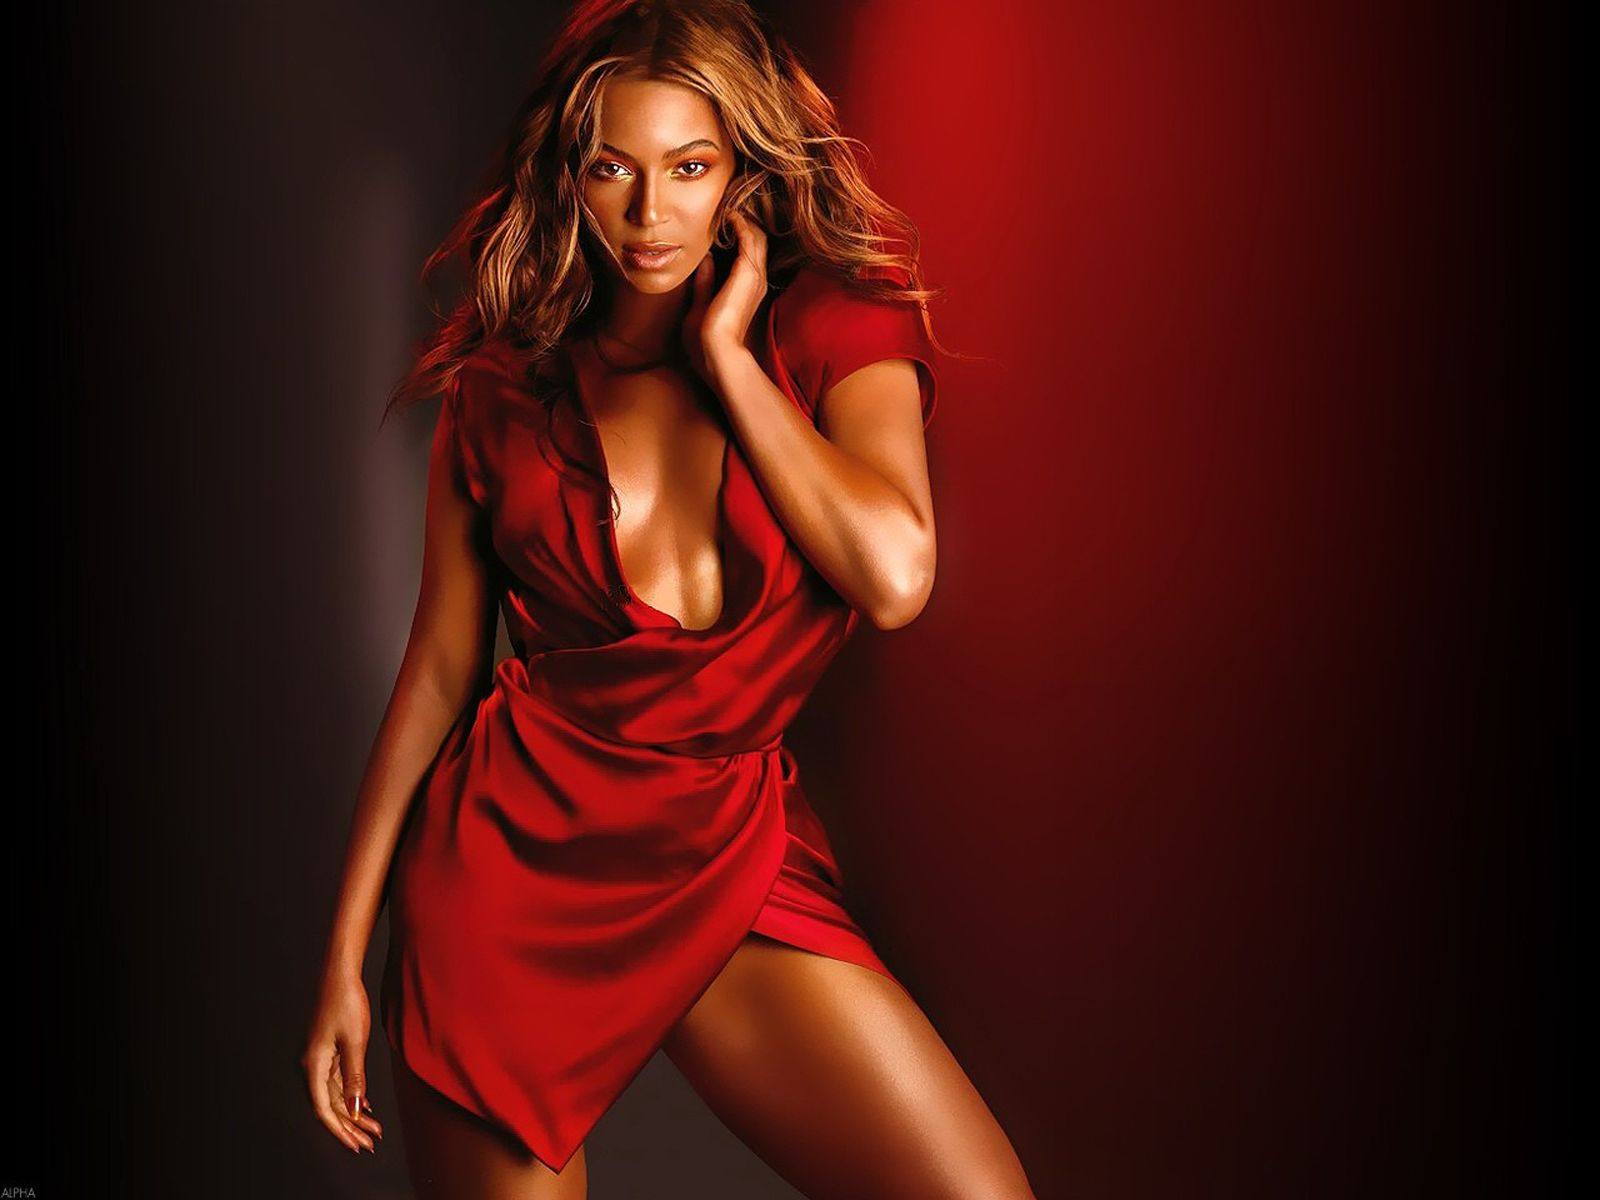 BeyonceKnowlesdesktop Free Wallpapers Pictures